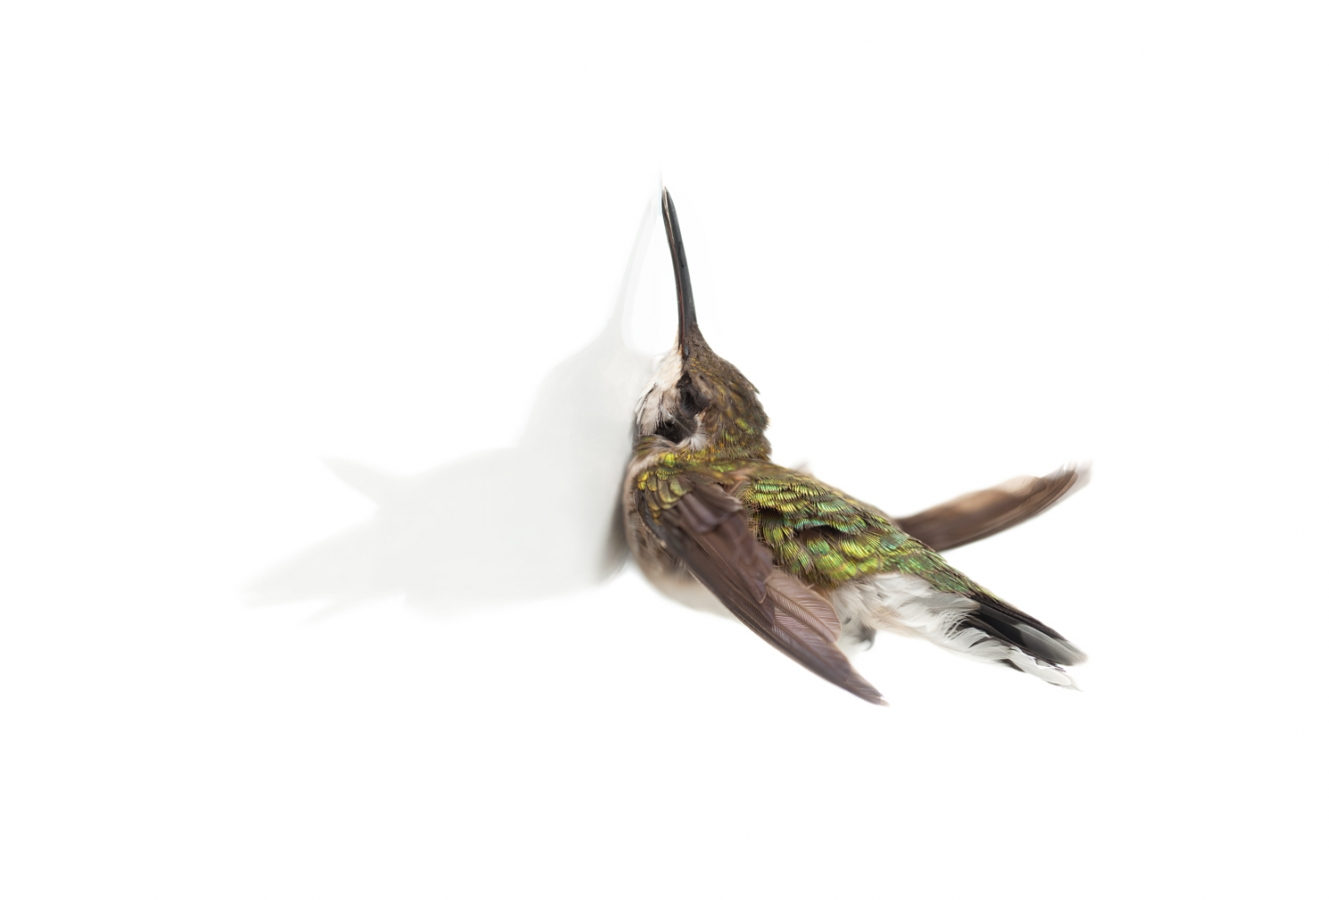 'Impact (Ruby-throated Hummingbird)' - Miranda Brandon